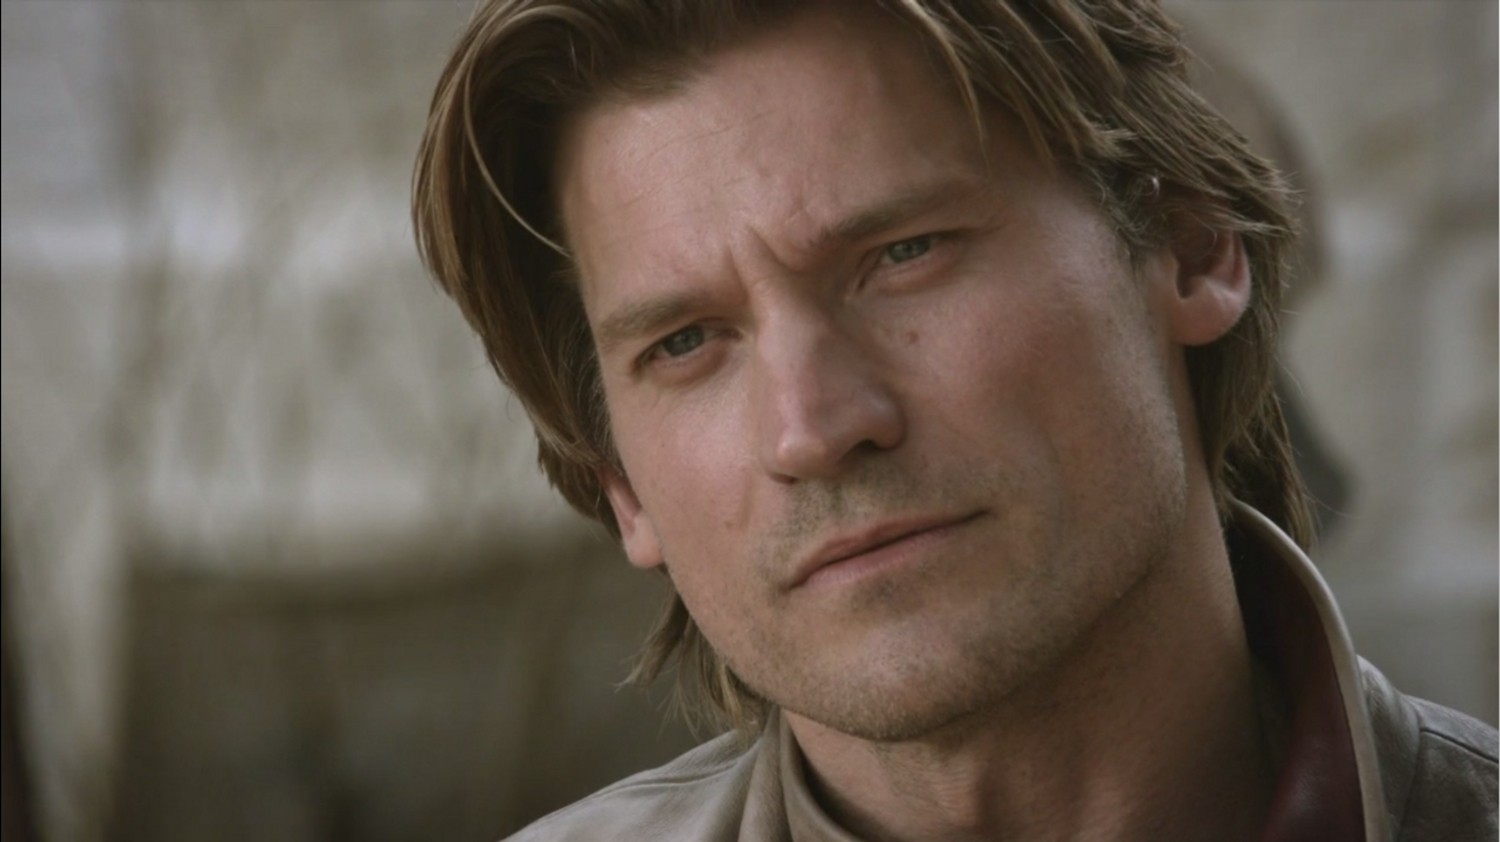 Nikolaj Coster-Waldau screencaps close-up Jaime Lannister Game of Thrones